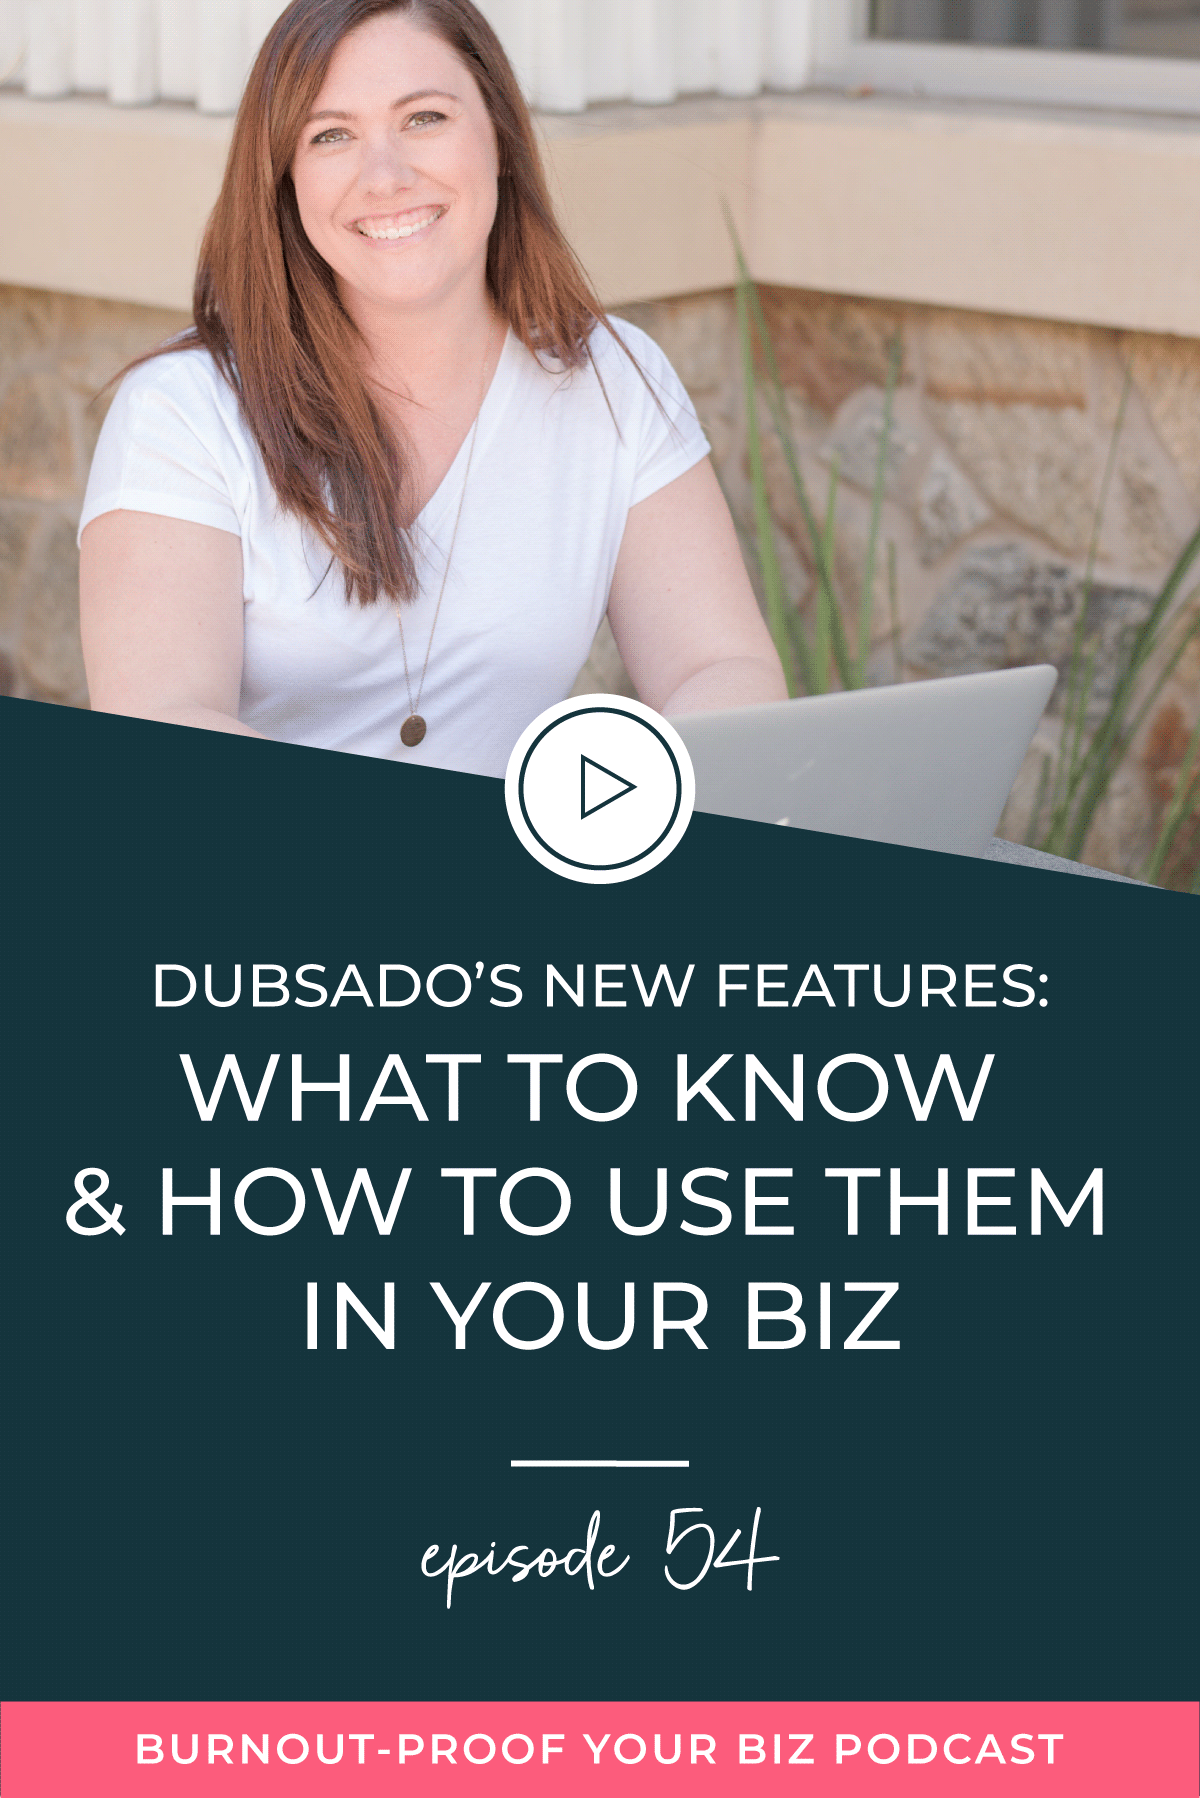 Burnout-Proof Your Biz Podcast with Chelsea B Foster | Episode 054 - Dubsado's New Features: What to Know & How to Use Them In YOUR Biz | Learn how to run your biz and live your dream life on your own terms without the fear of burnout.  |||  Business Coach | Workflow & Productivity Specialist | Dubsado - a CRM for Creatives | Dubsado | Dubsado for Coaches | Dubsado for Photographers | Dubsado for Bloggers | Dubsado for Network Marketers | Dubsado for Graphic Designers | Dubsado New Features | Overwhelmed | Stressed-out | Journaling Activity | Creative Entrepreneur | Creative Influencer | Productivity | Dream life | Freedom Lifestyle | Having a business that supports your dream life | Client onboarding | Leads tracking |